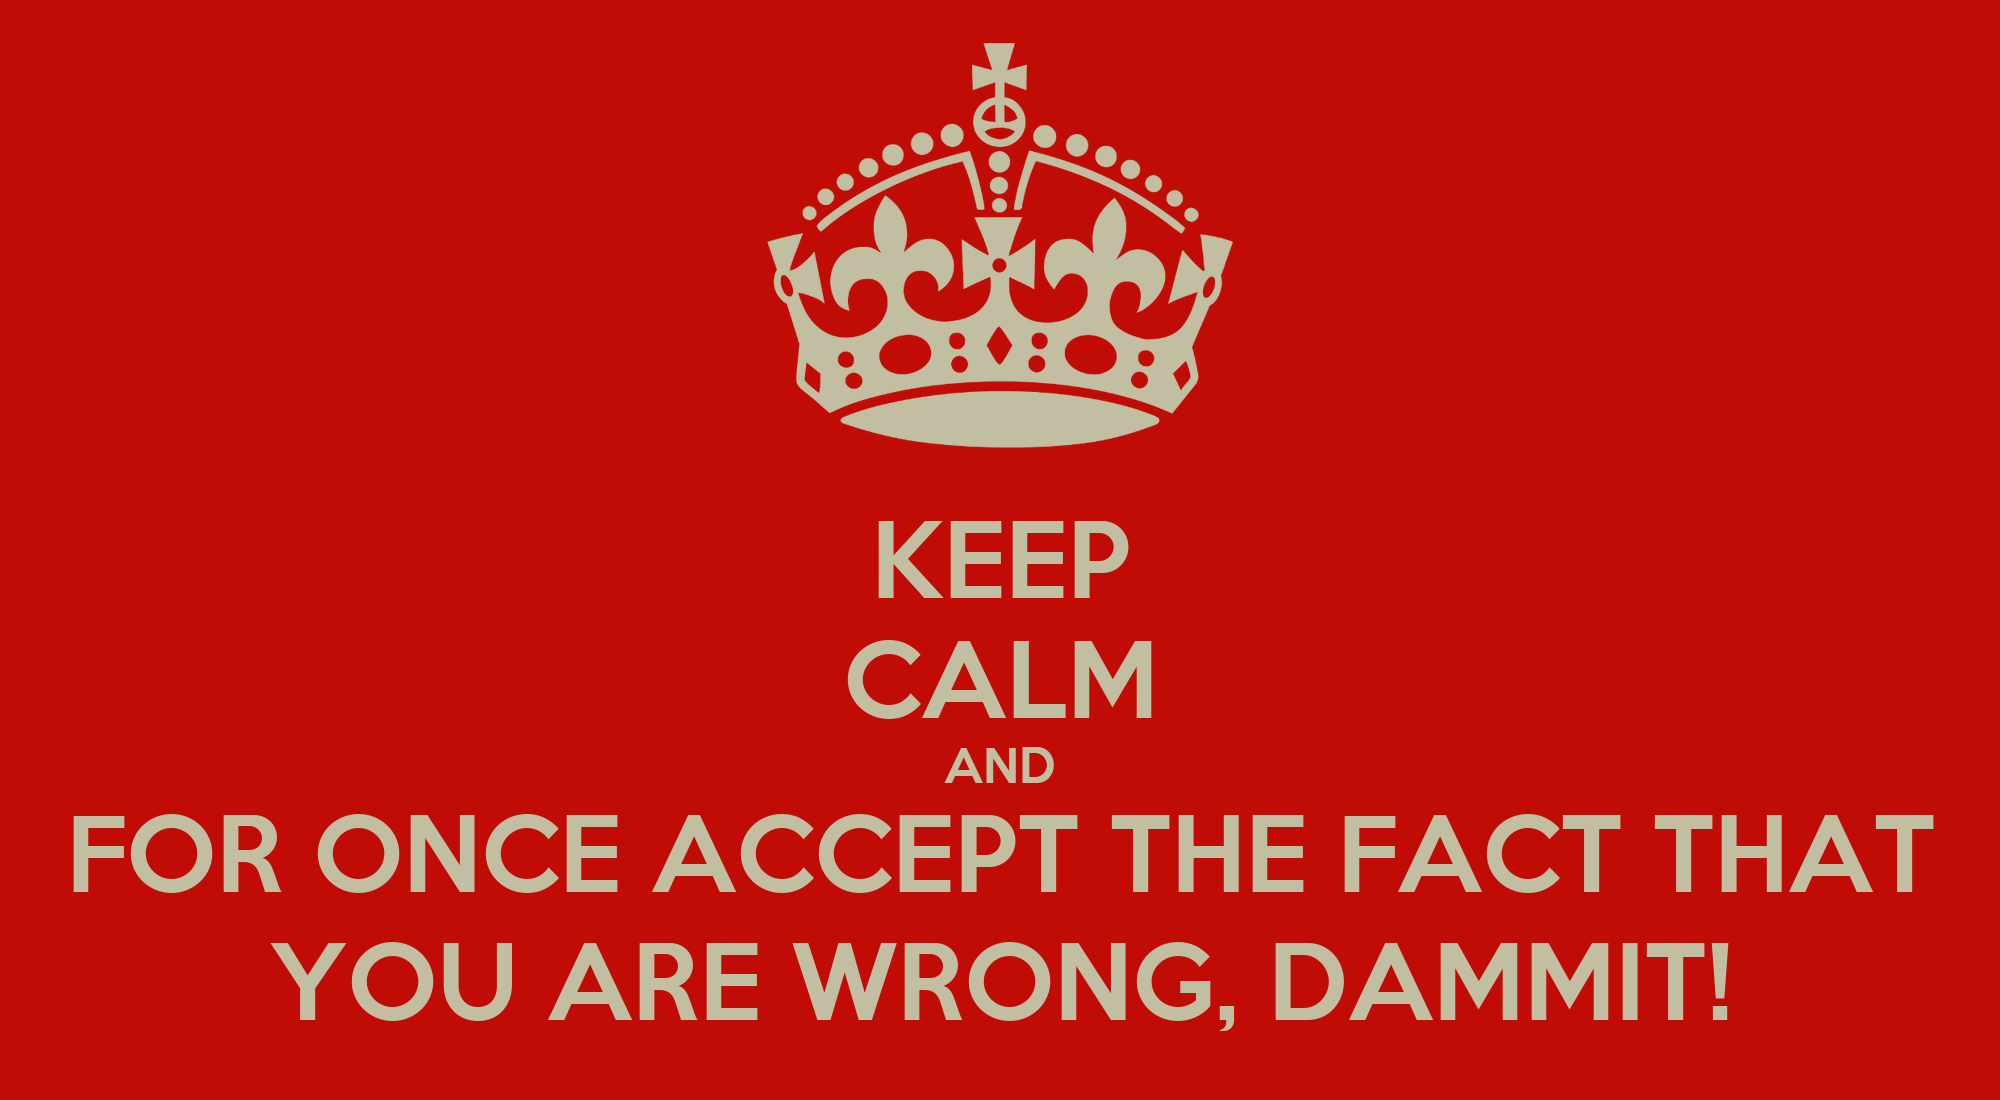 Wall Stickers Childrens Keep Calm And For Once Accept The Fact That You Are Wrong